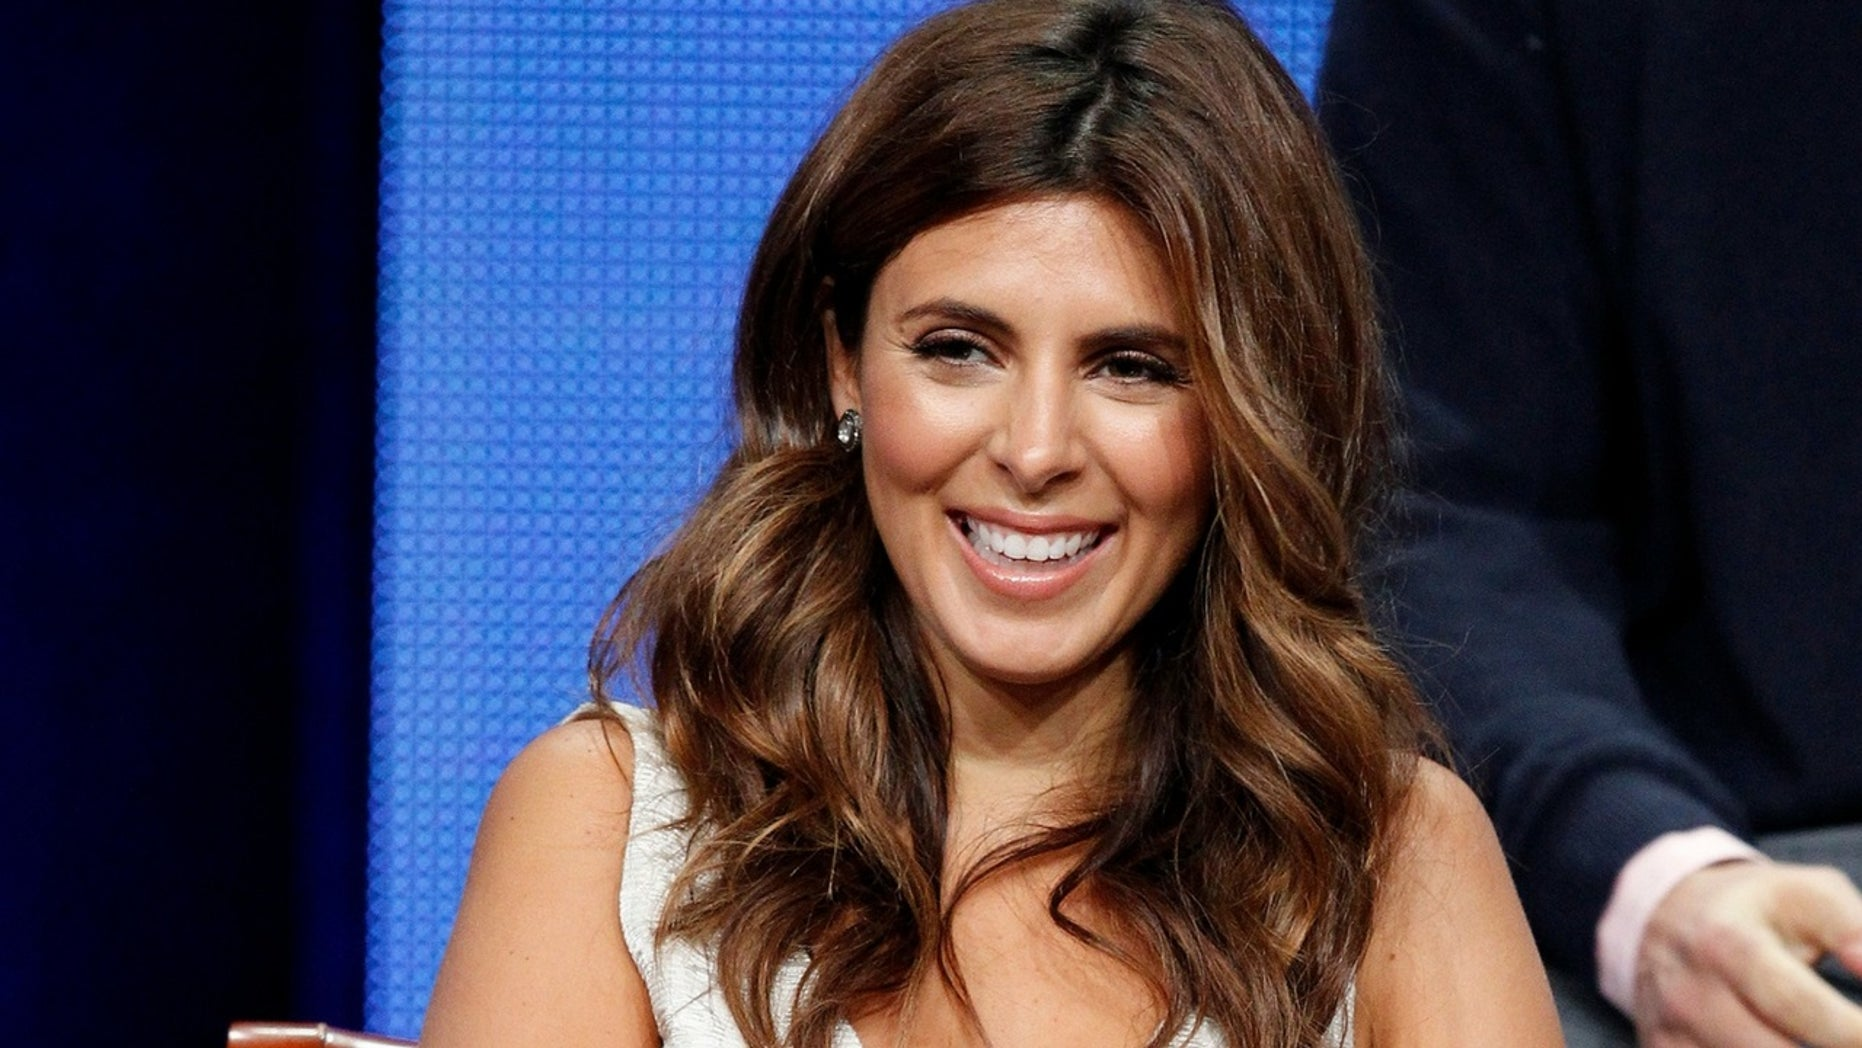 Jamie-Lynn Sigler revealed she stopped breastfeeding in order to take her medication for MS.